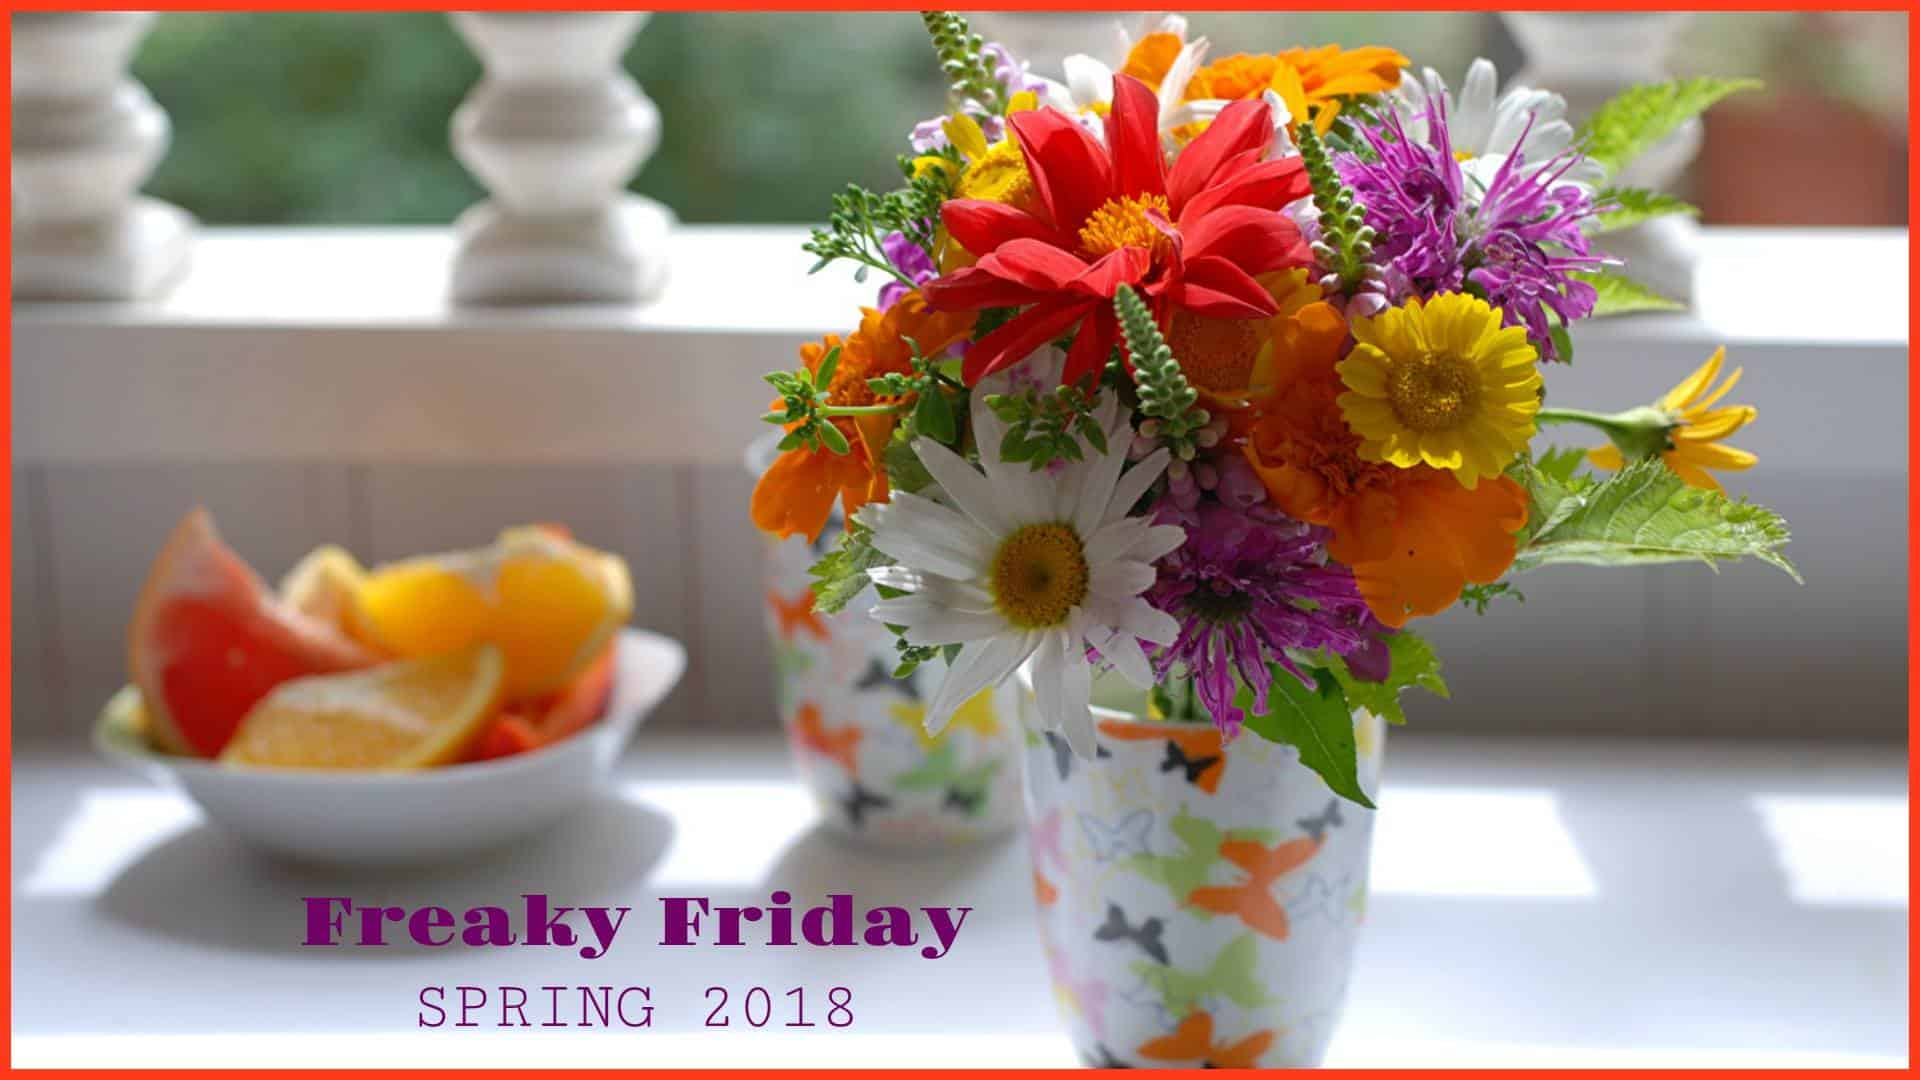 Freaky Friday Spring Edition 2018